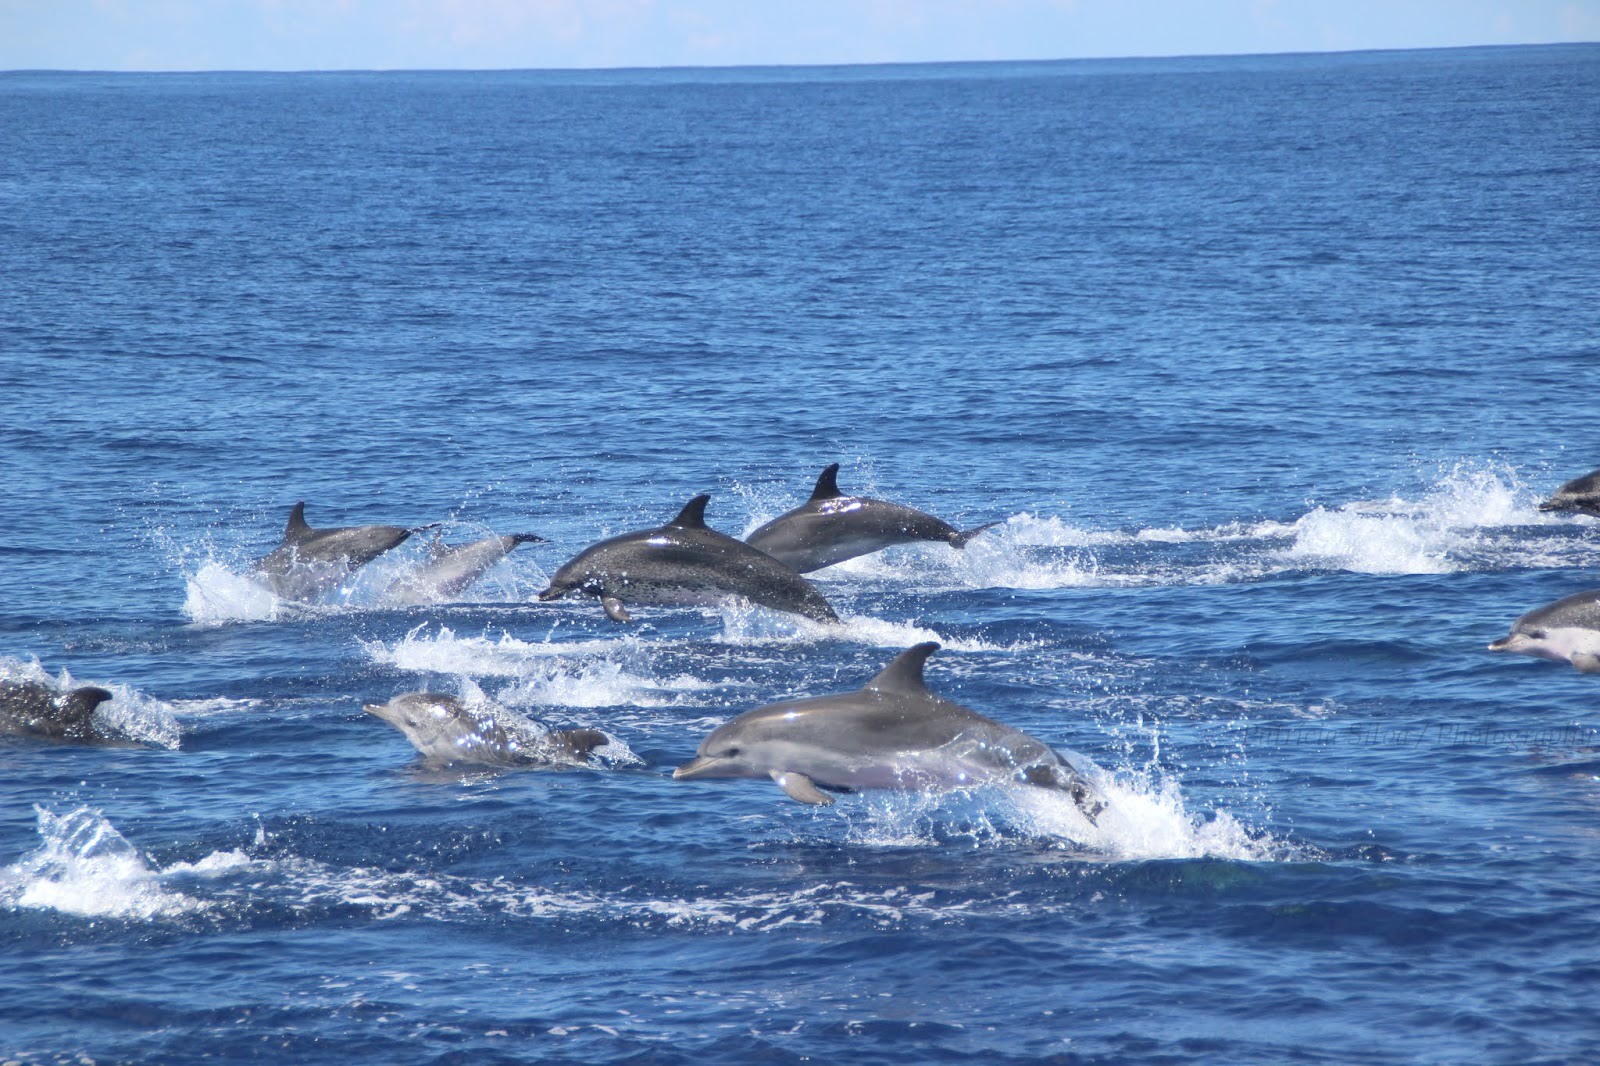 a group of Azores dolphins jumping arround